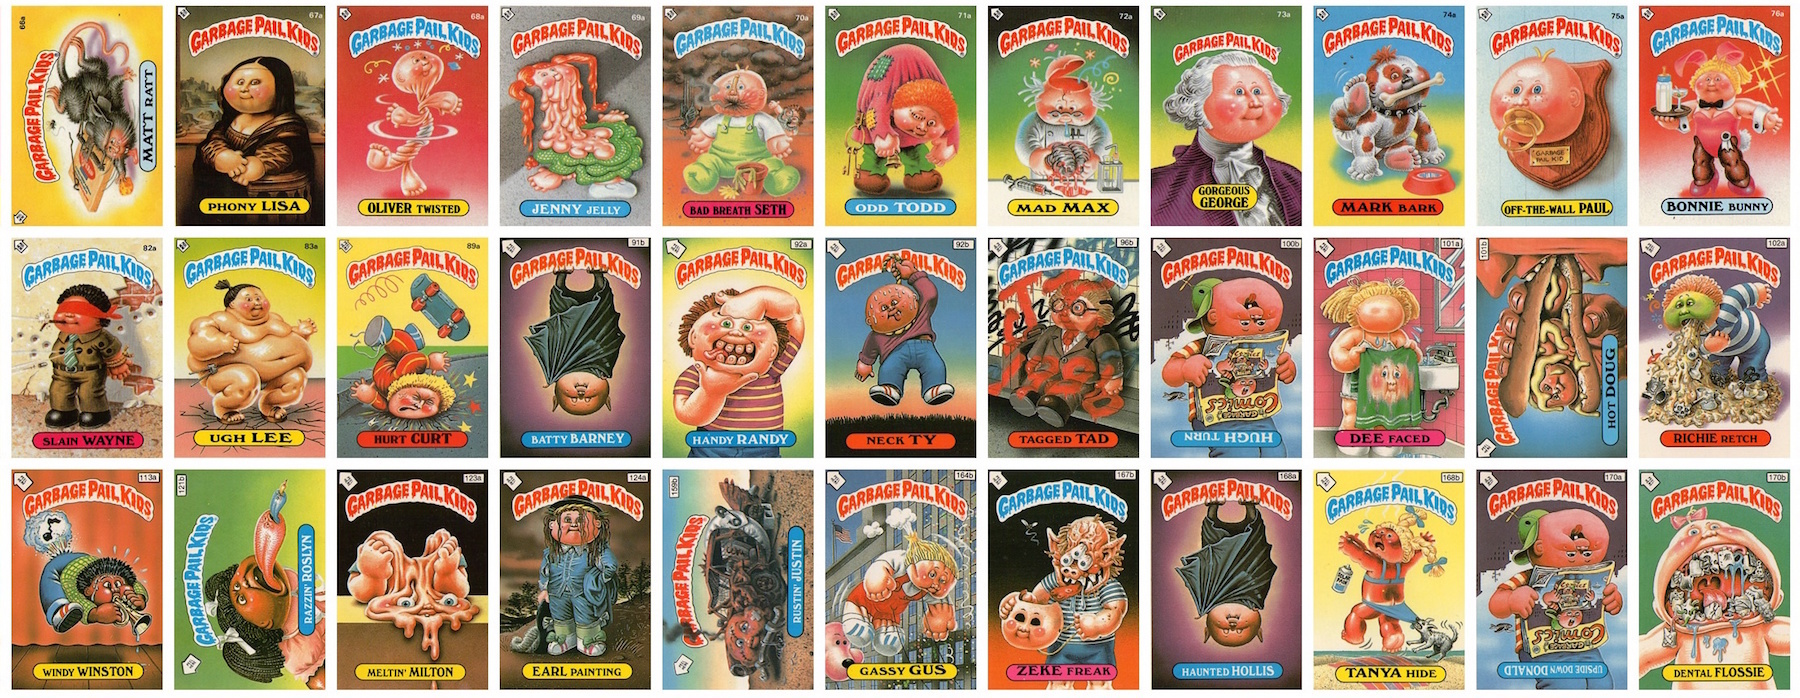 The Garbage Pail Kids Documentary Has A Release Date